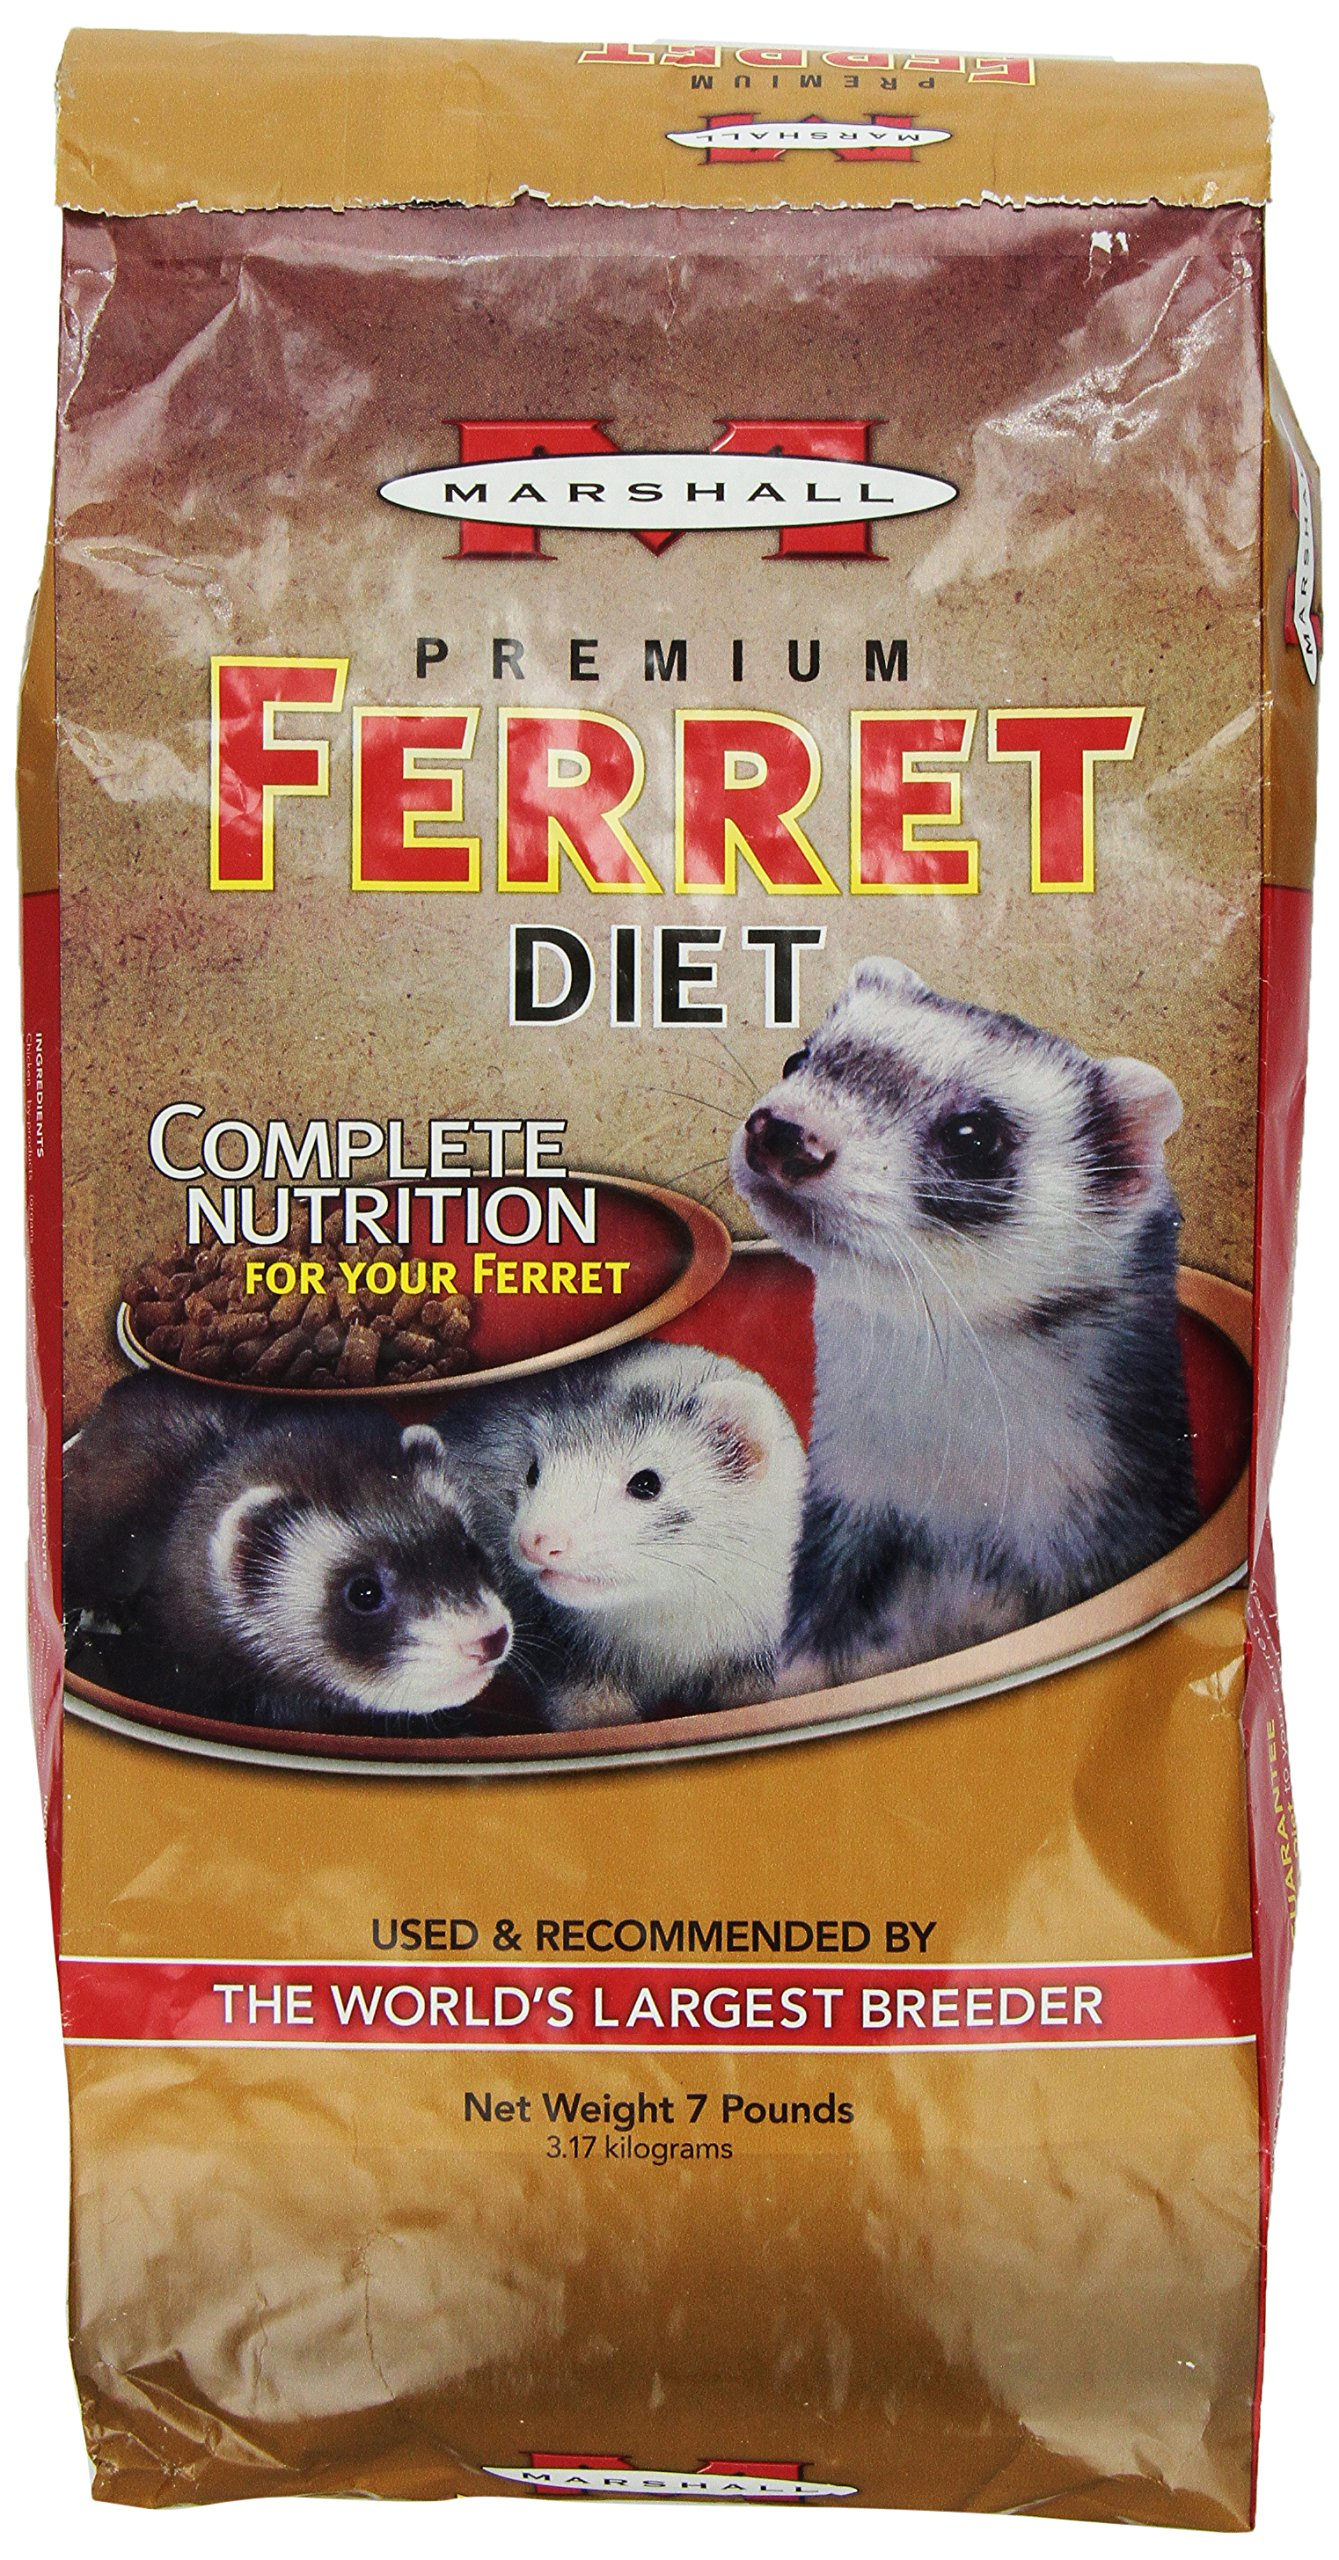 Marshall Premium Ferret Diet, 7-Pound Bag by Marshall Pet Products